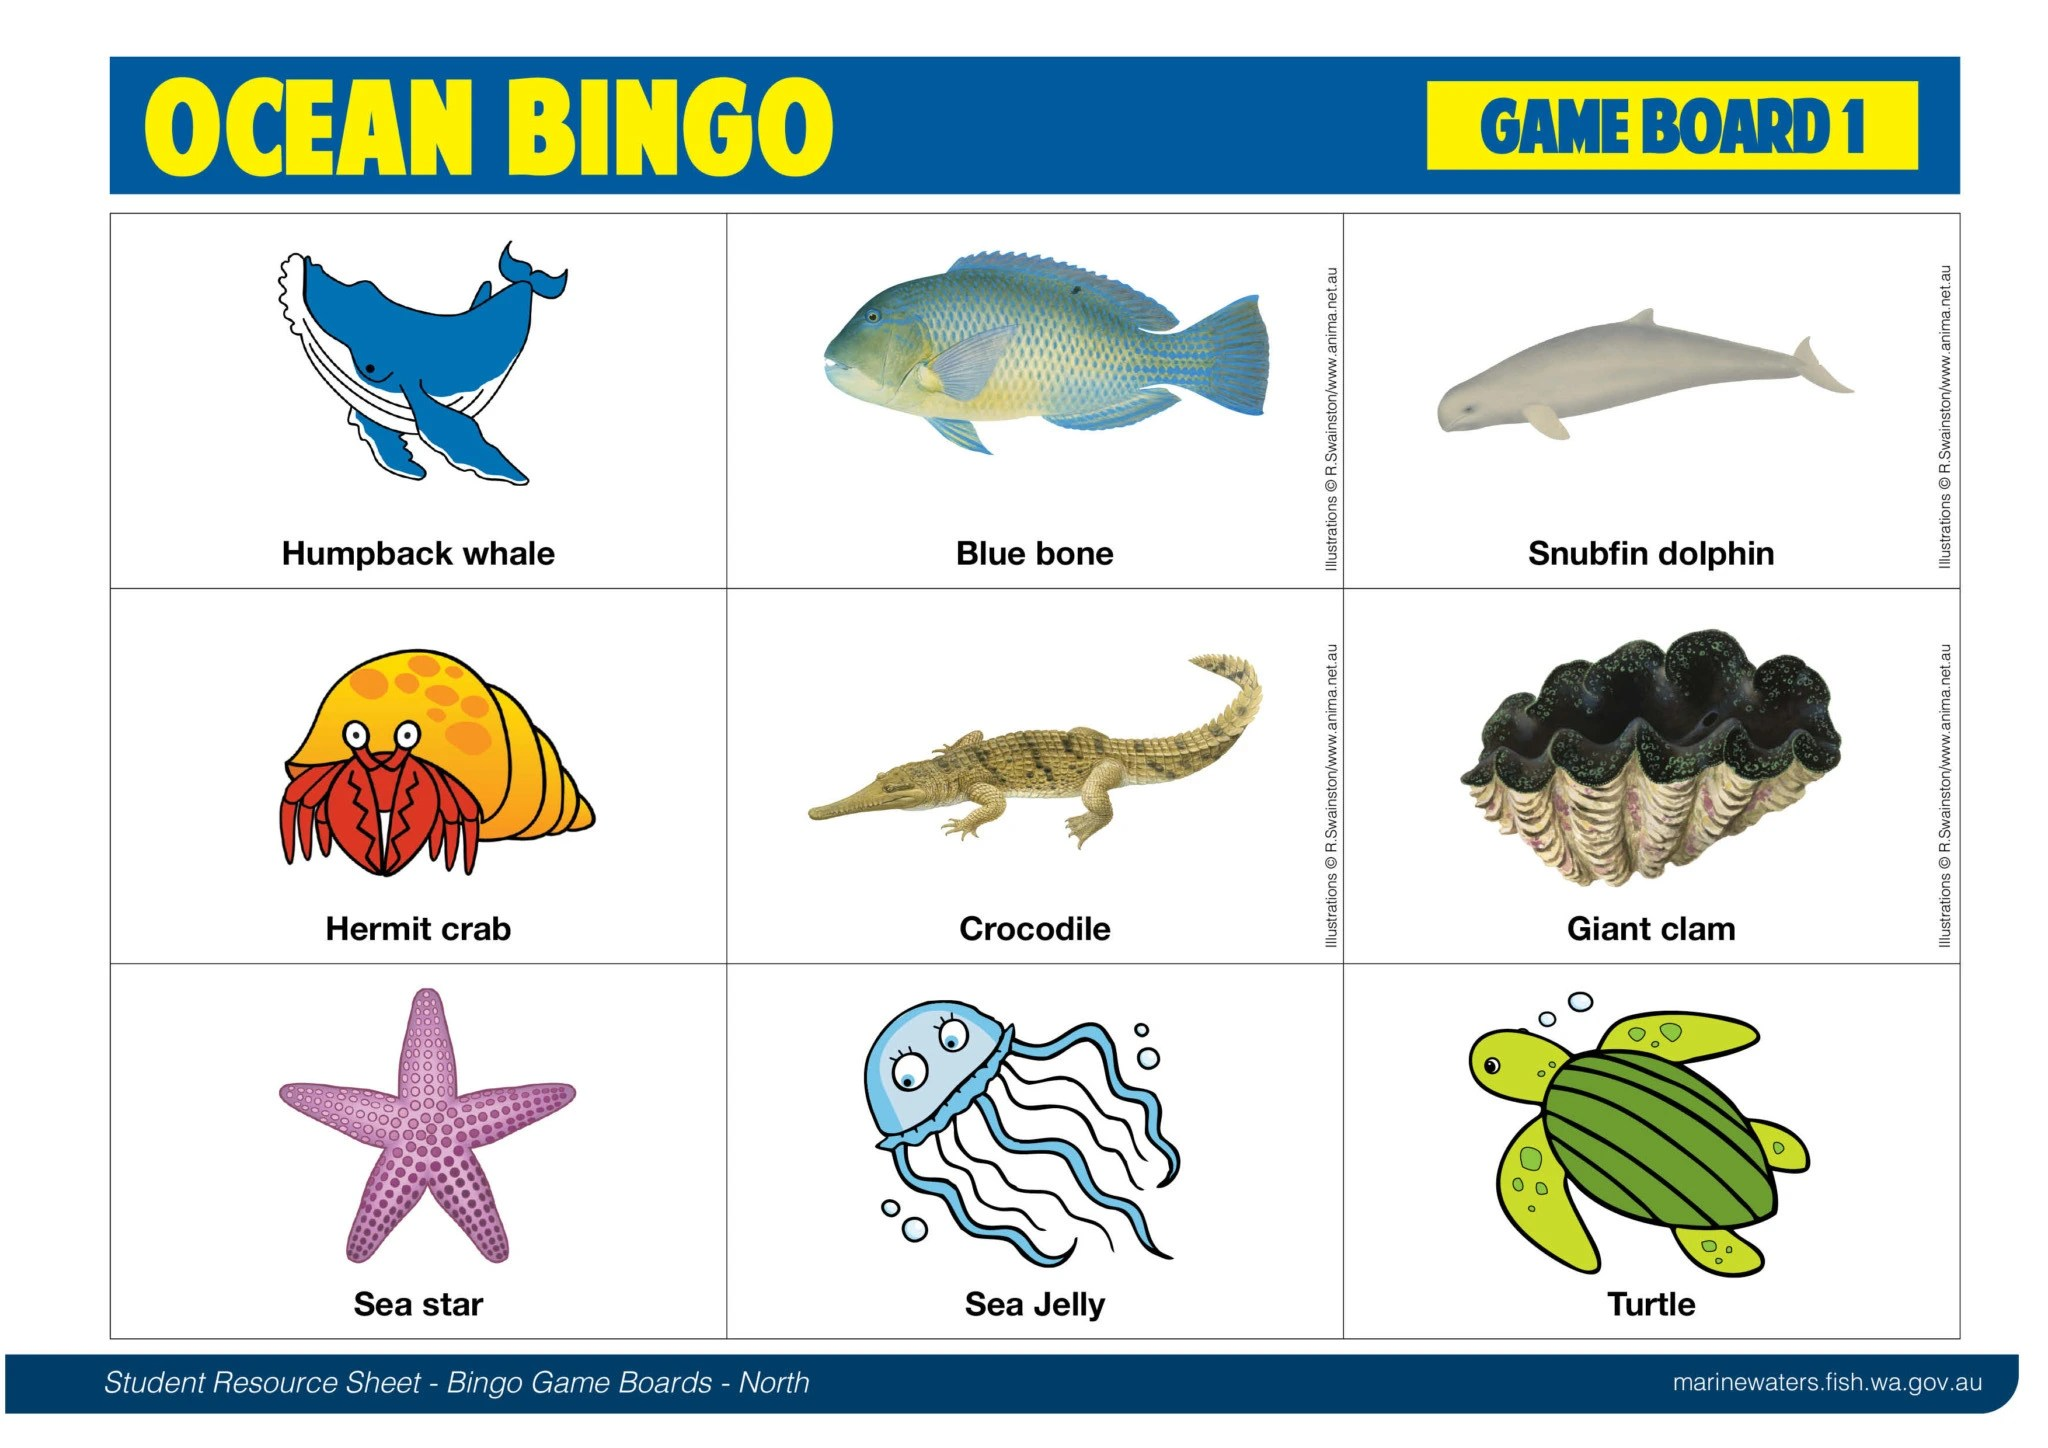 Student Resource Sheet Bingo Game Boards